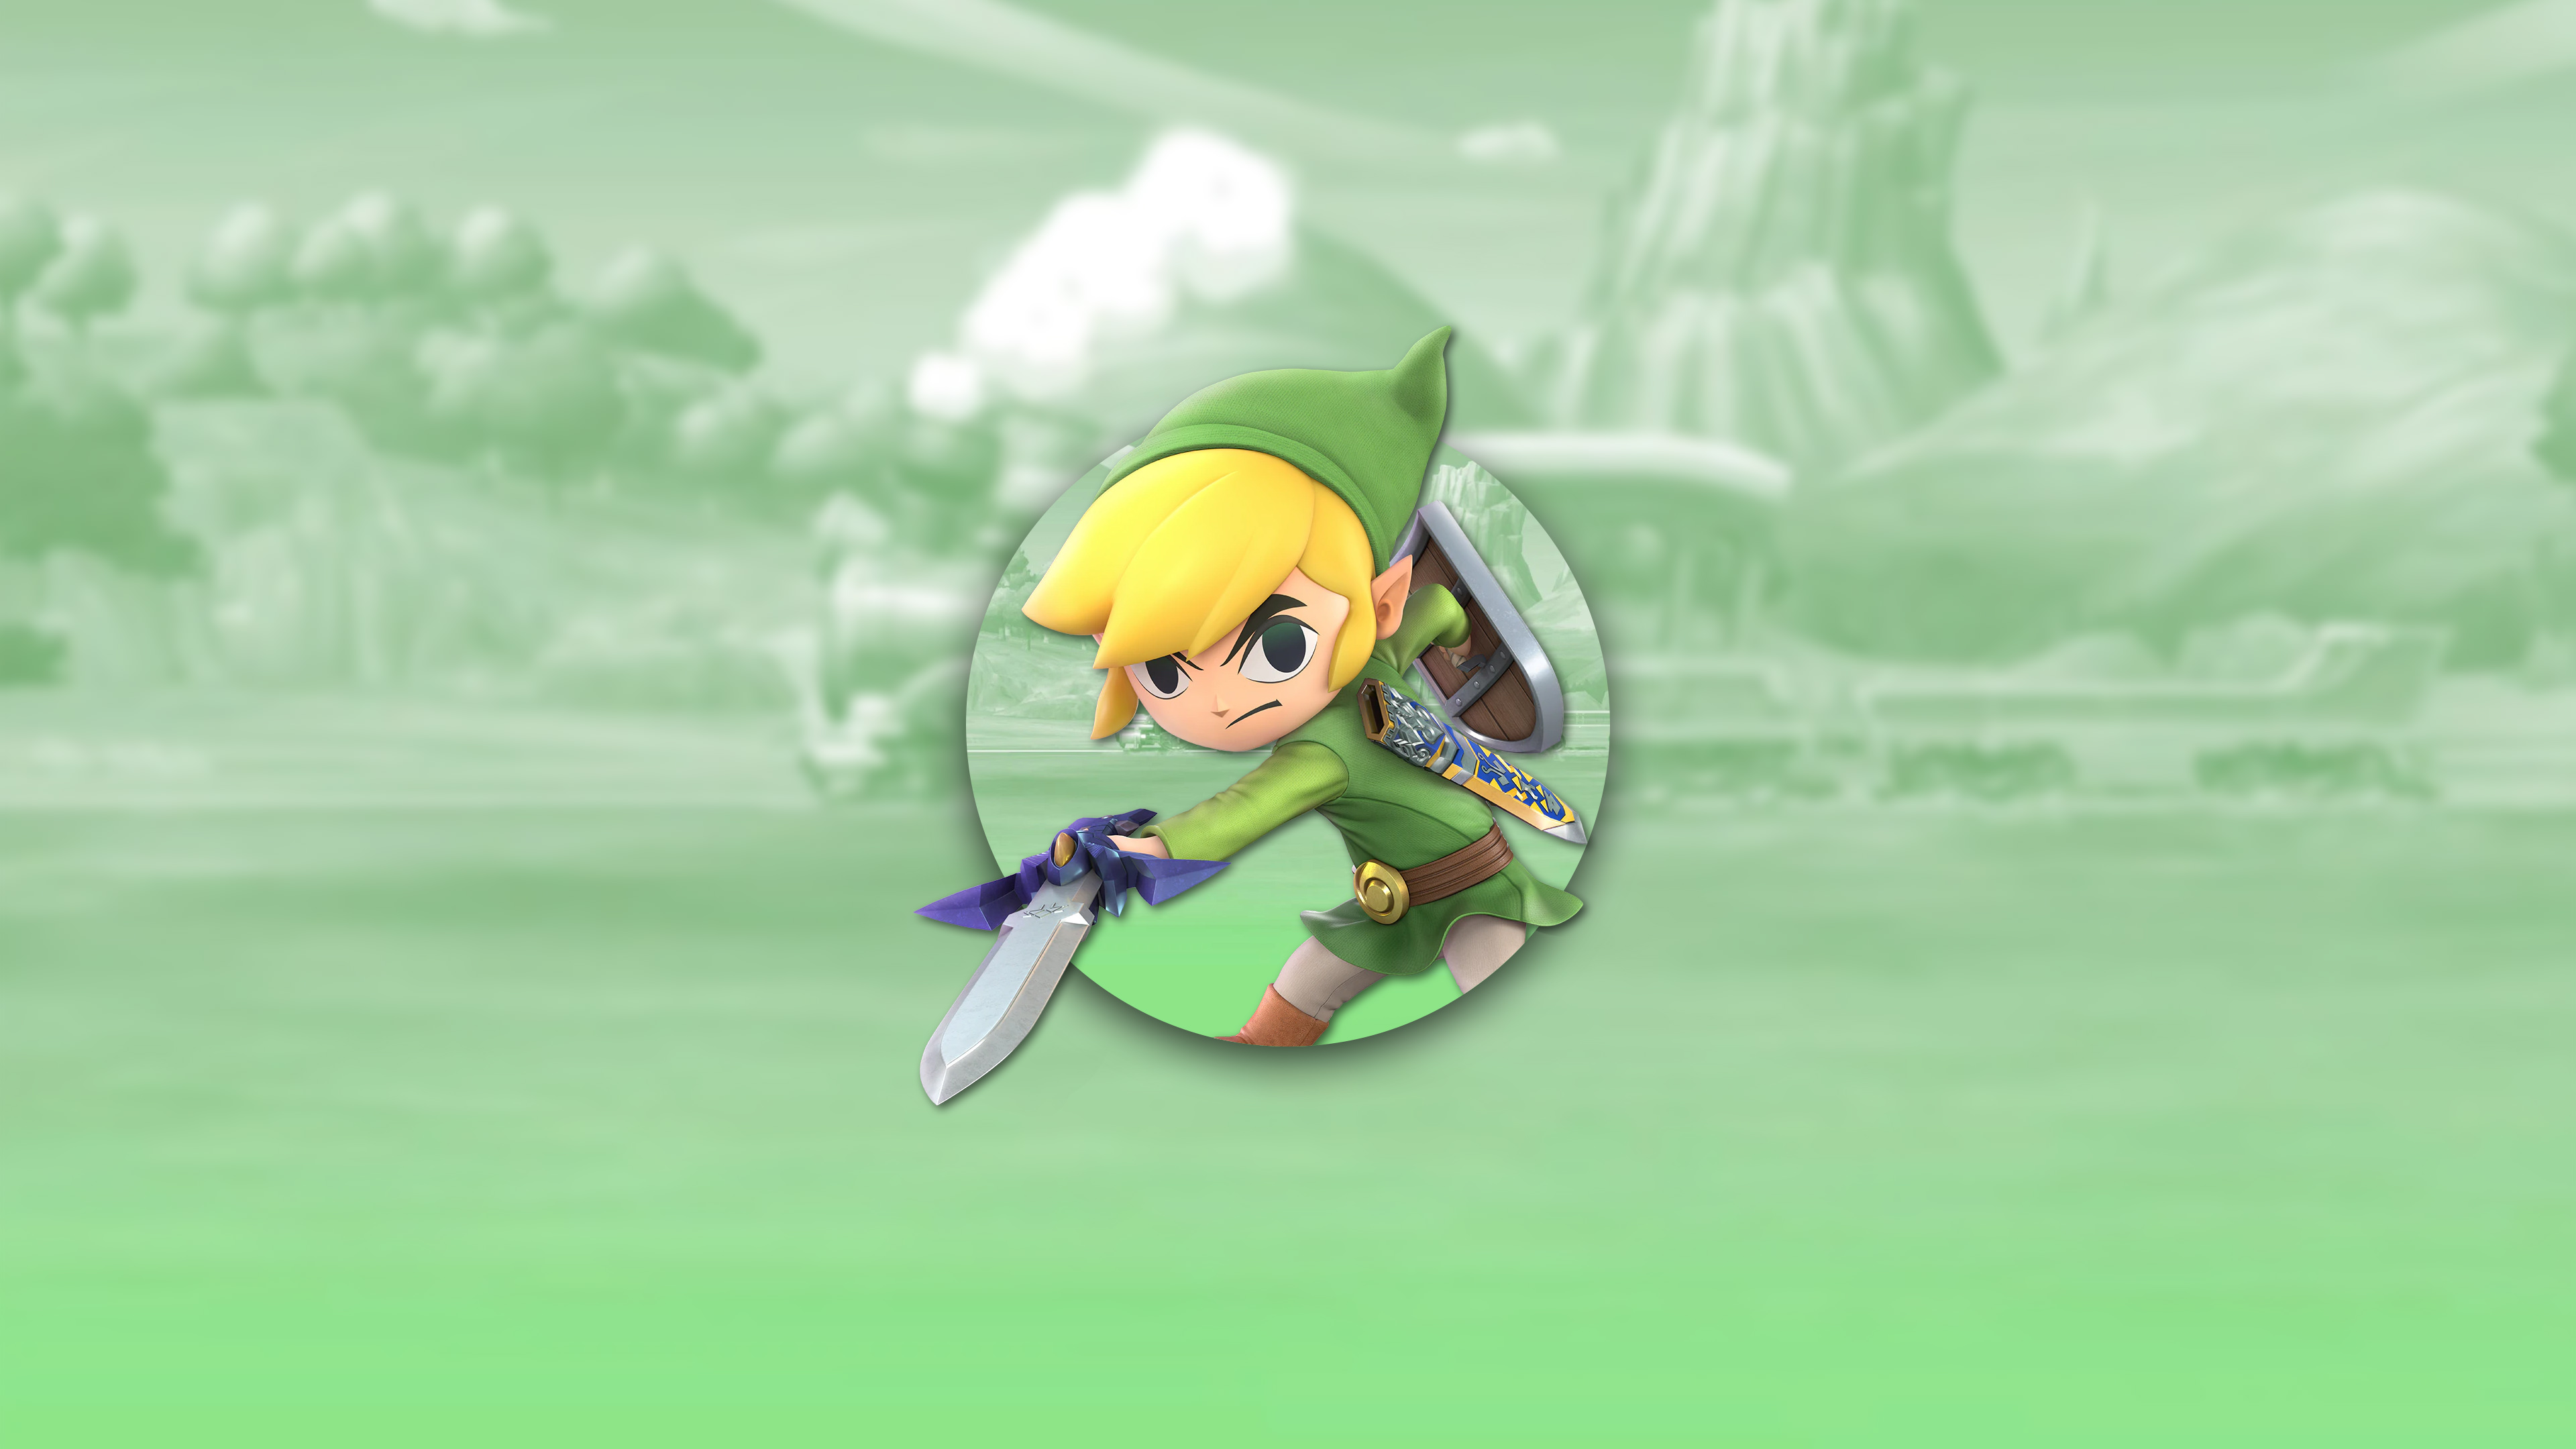 super smash bros ultimate toon link uhd 4k wallpaper